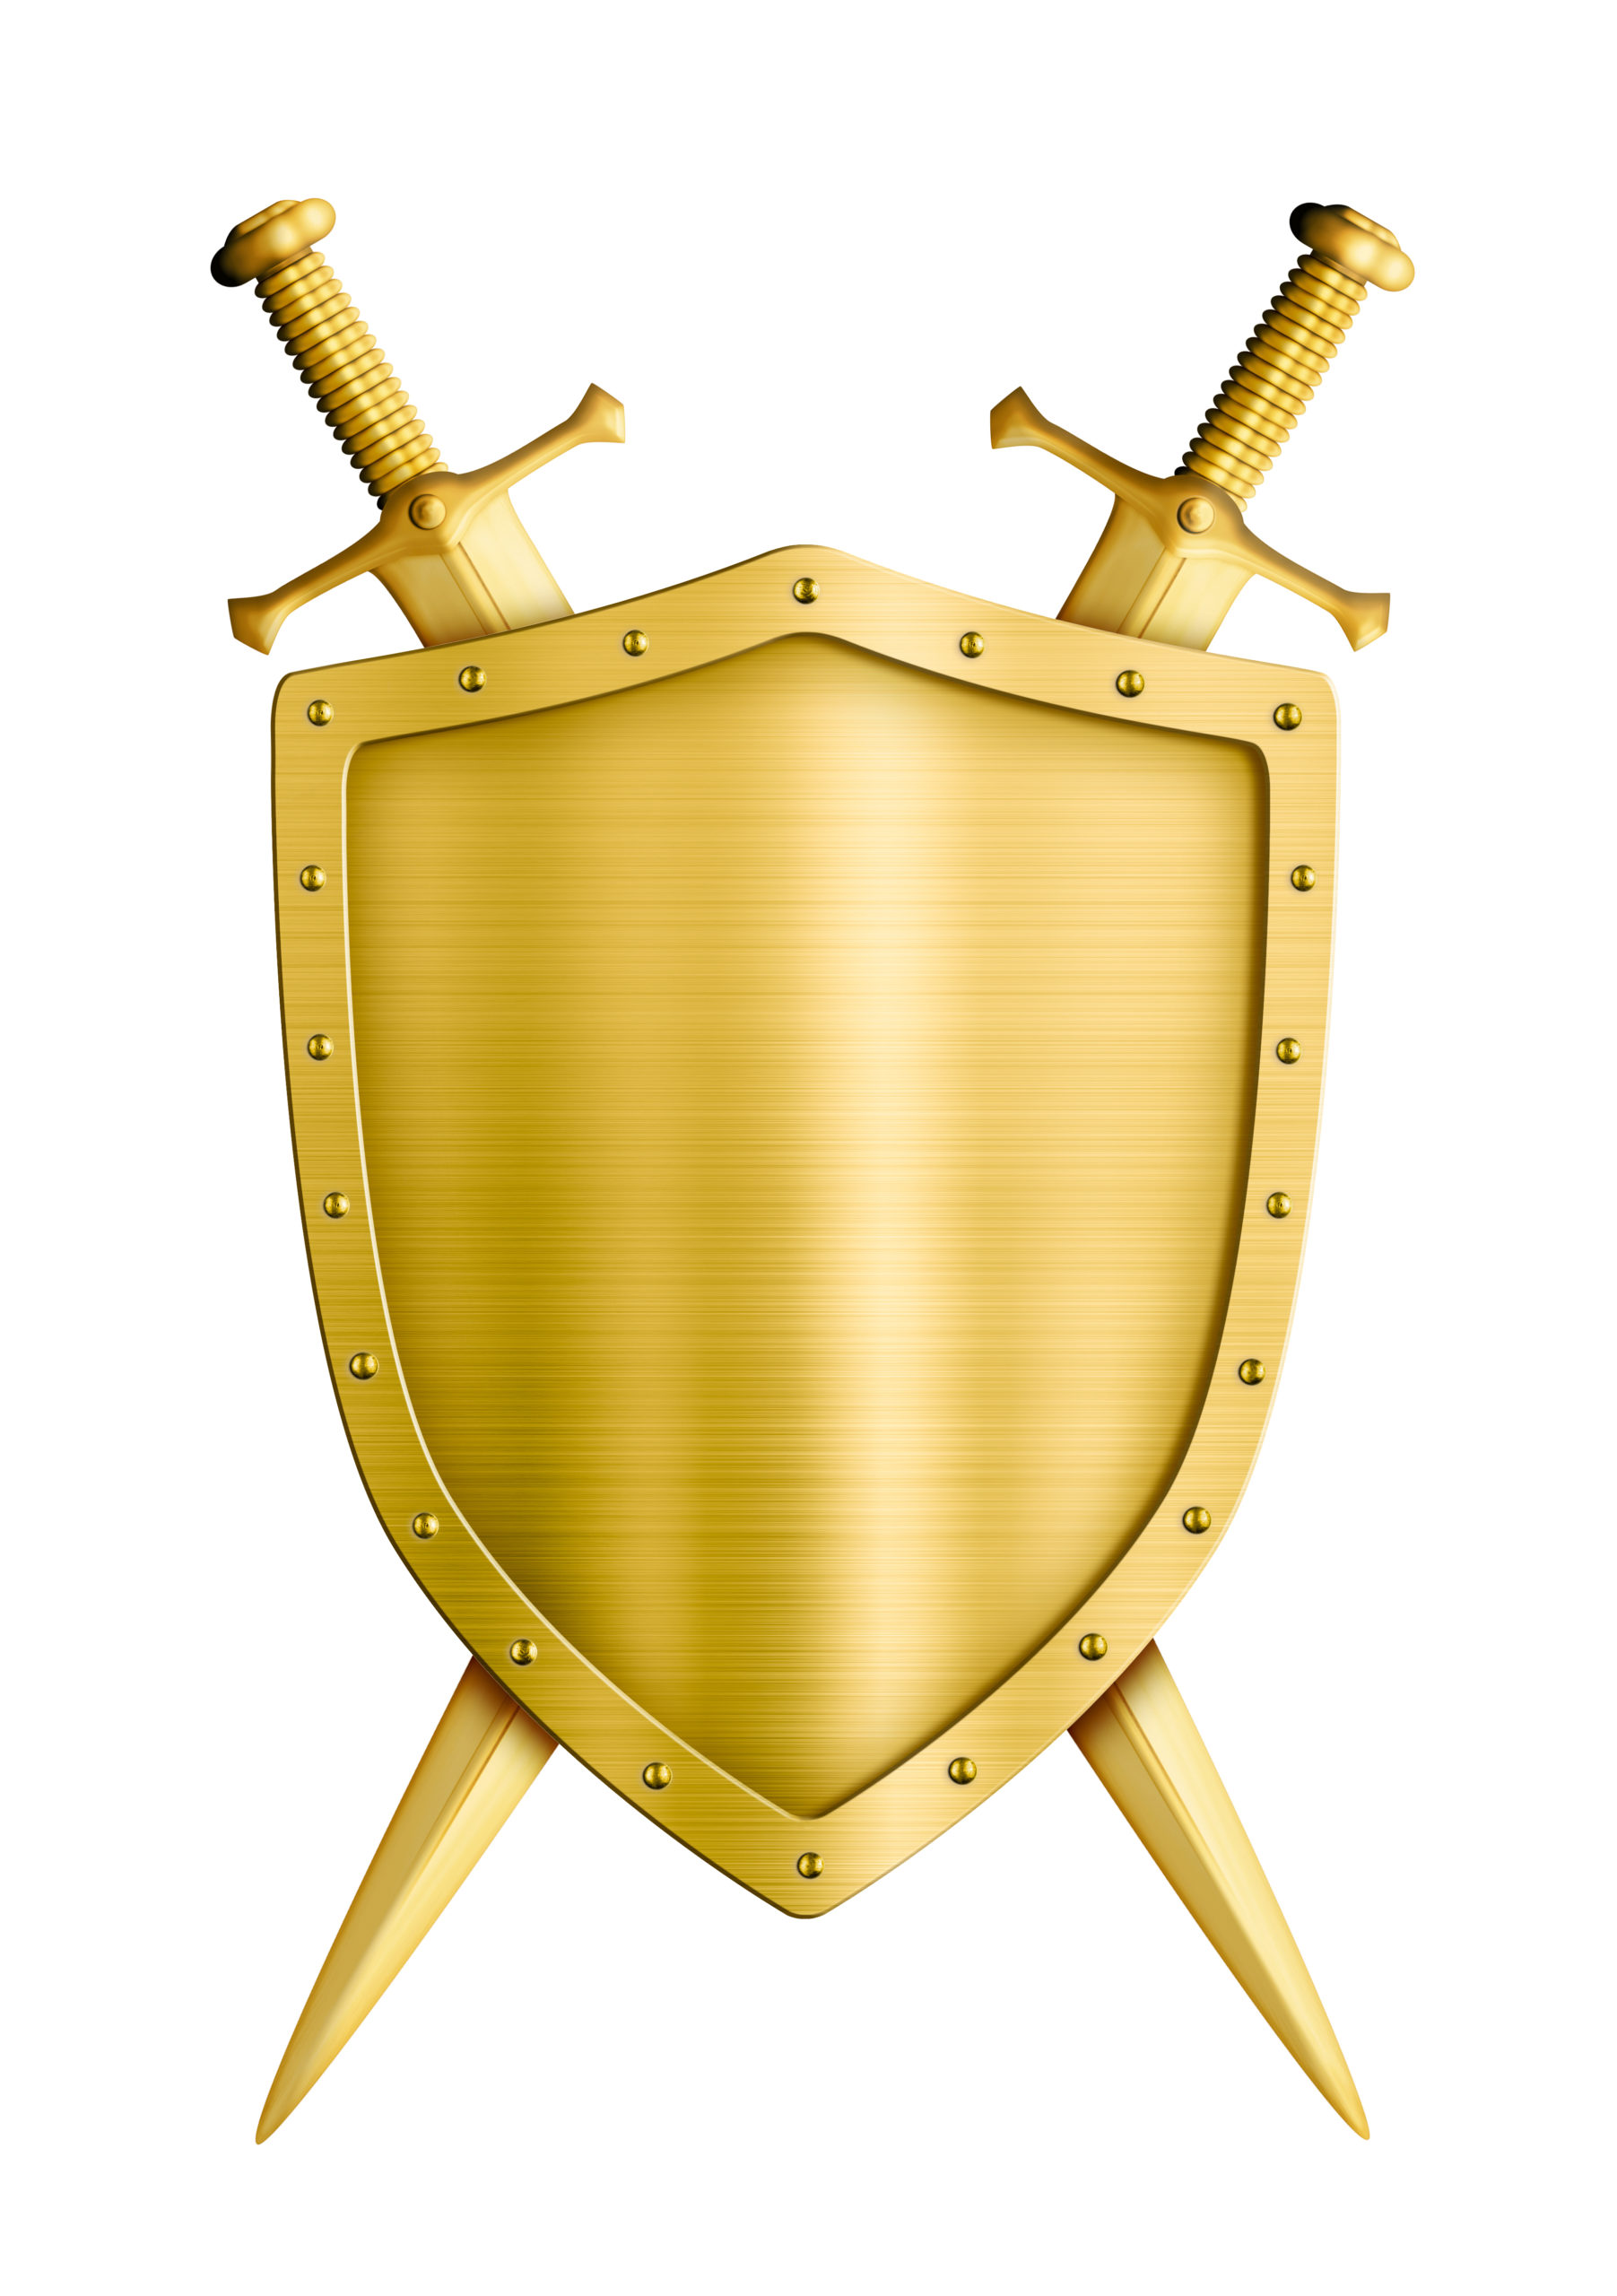 gold coat of arms medieval knight shield and swords isolated